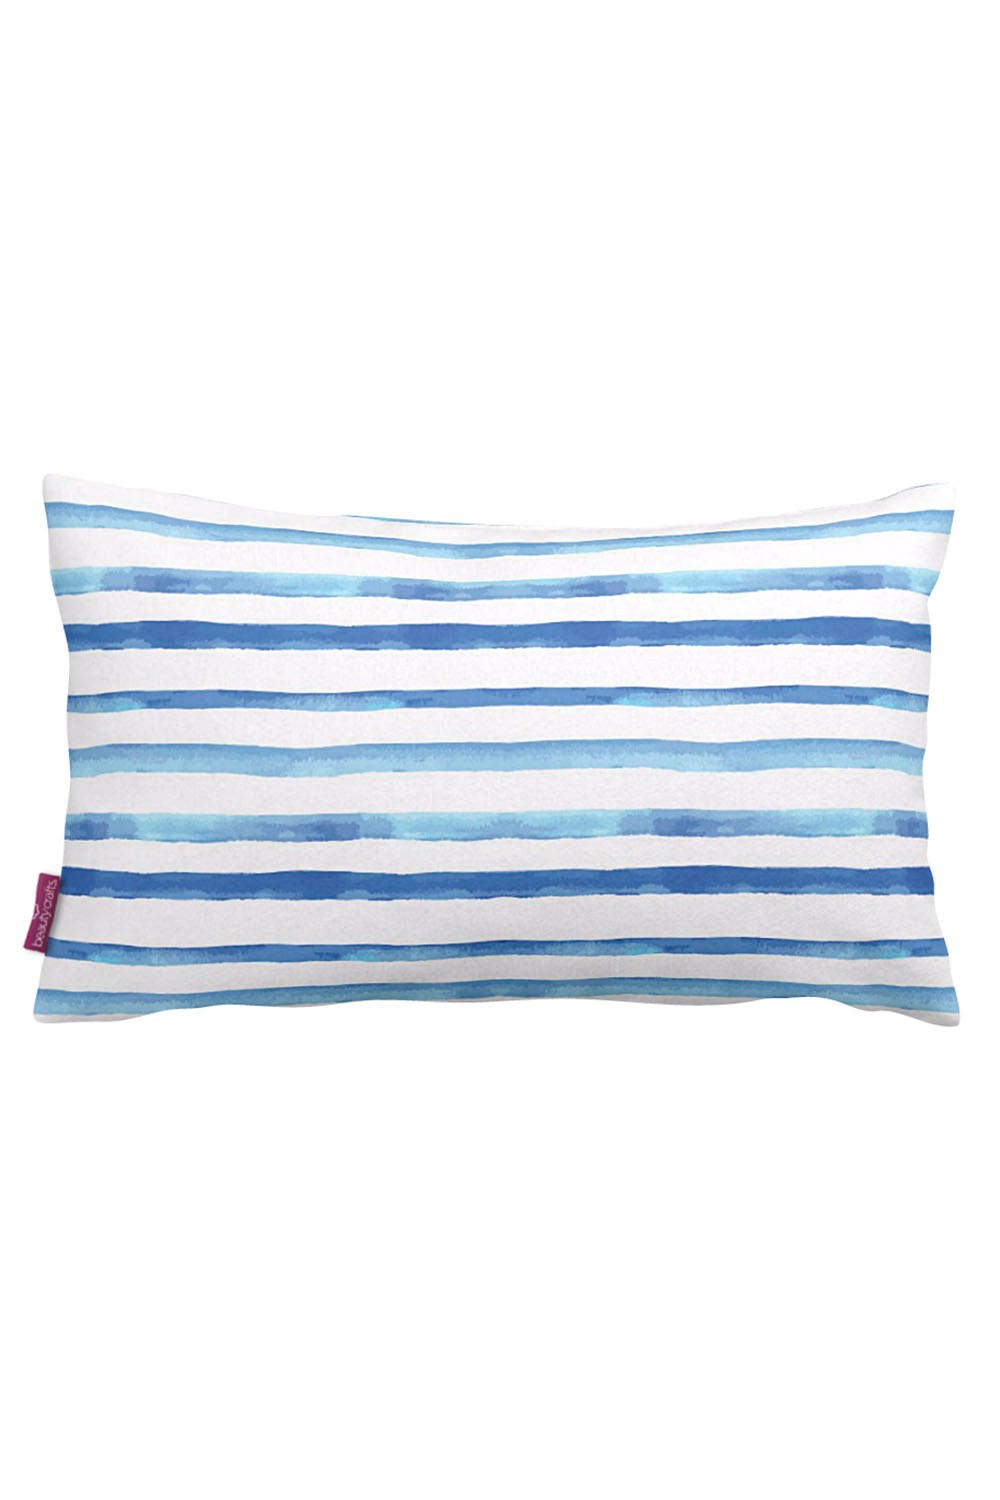 MIZALLE Anchor Decorative Pillow Case (33X57) (1)